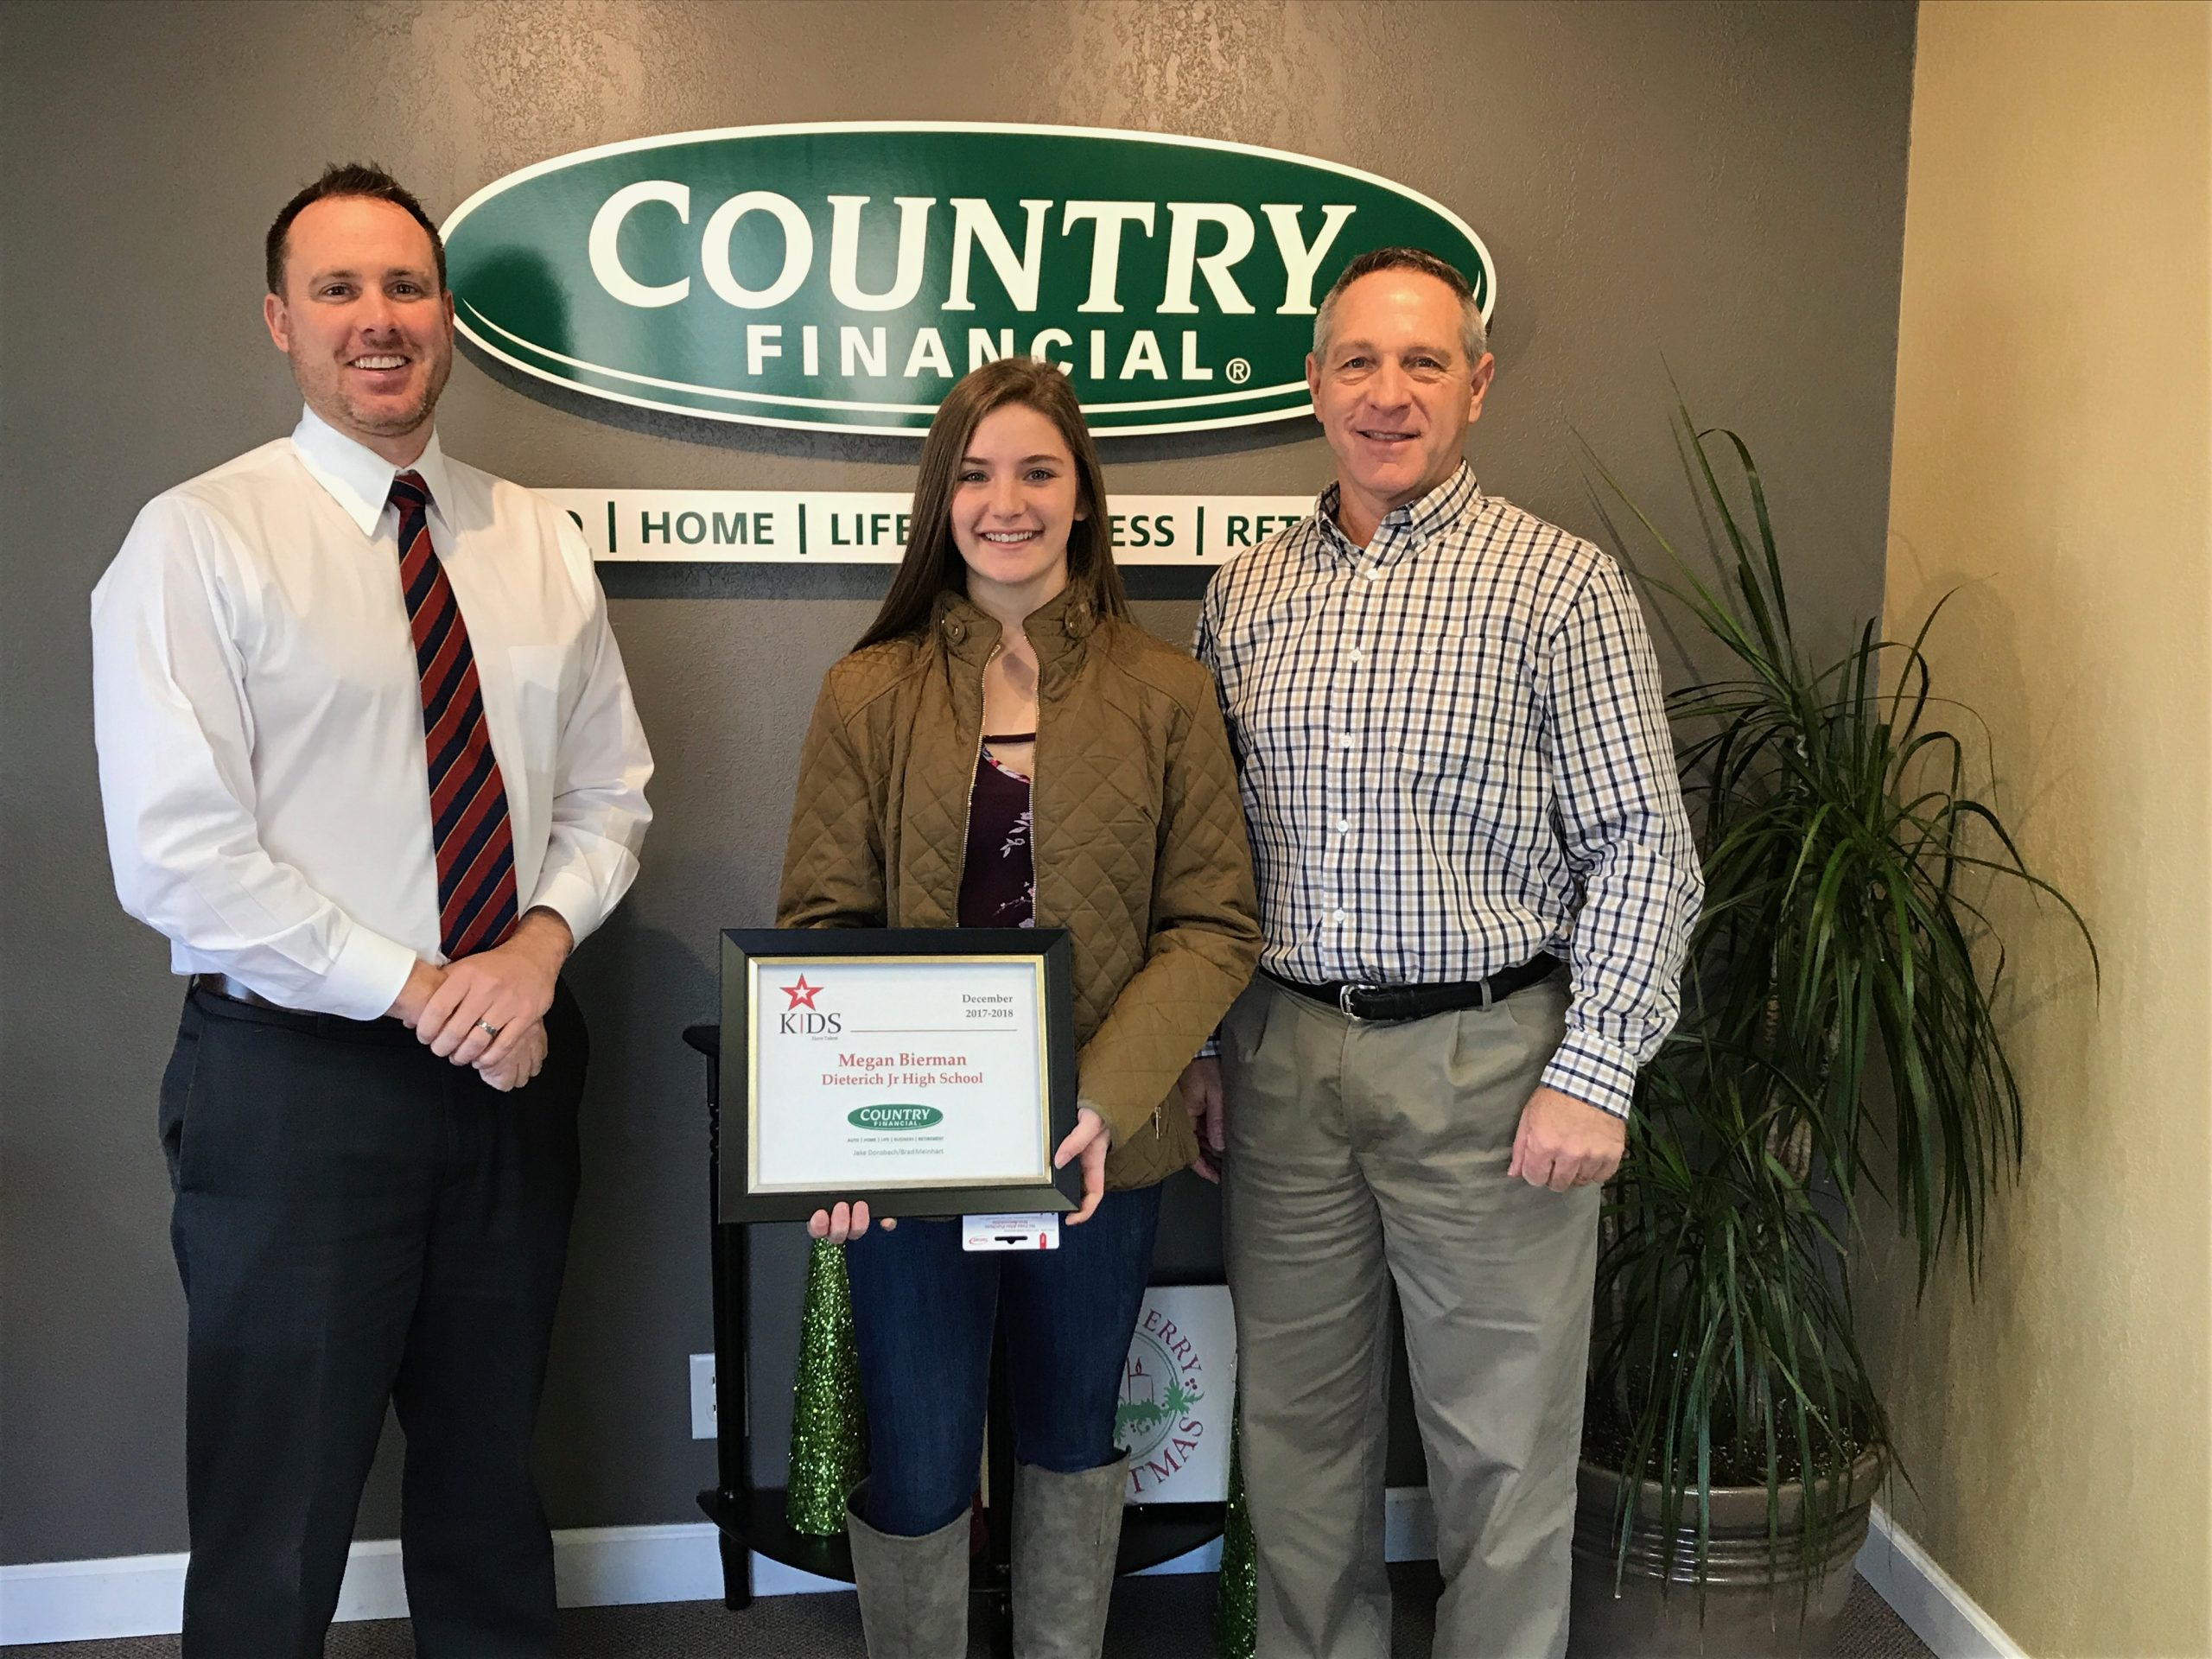 Local Dieterich Student Recognized by COUNTRY Financial